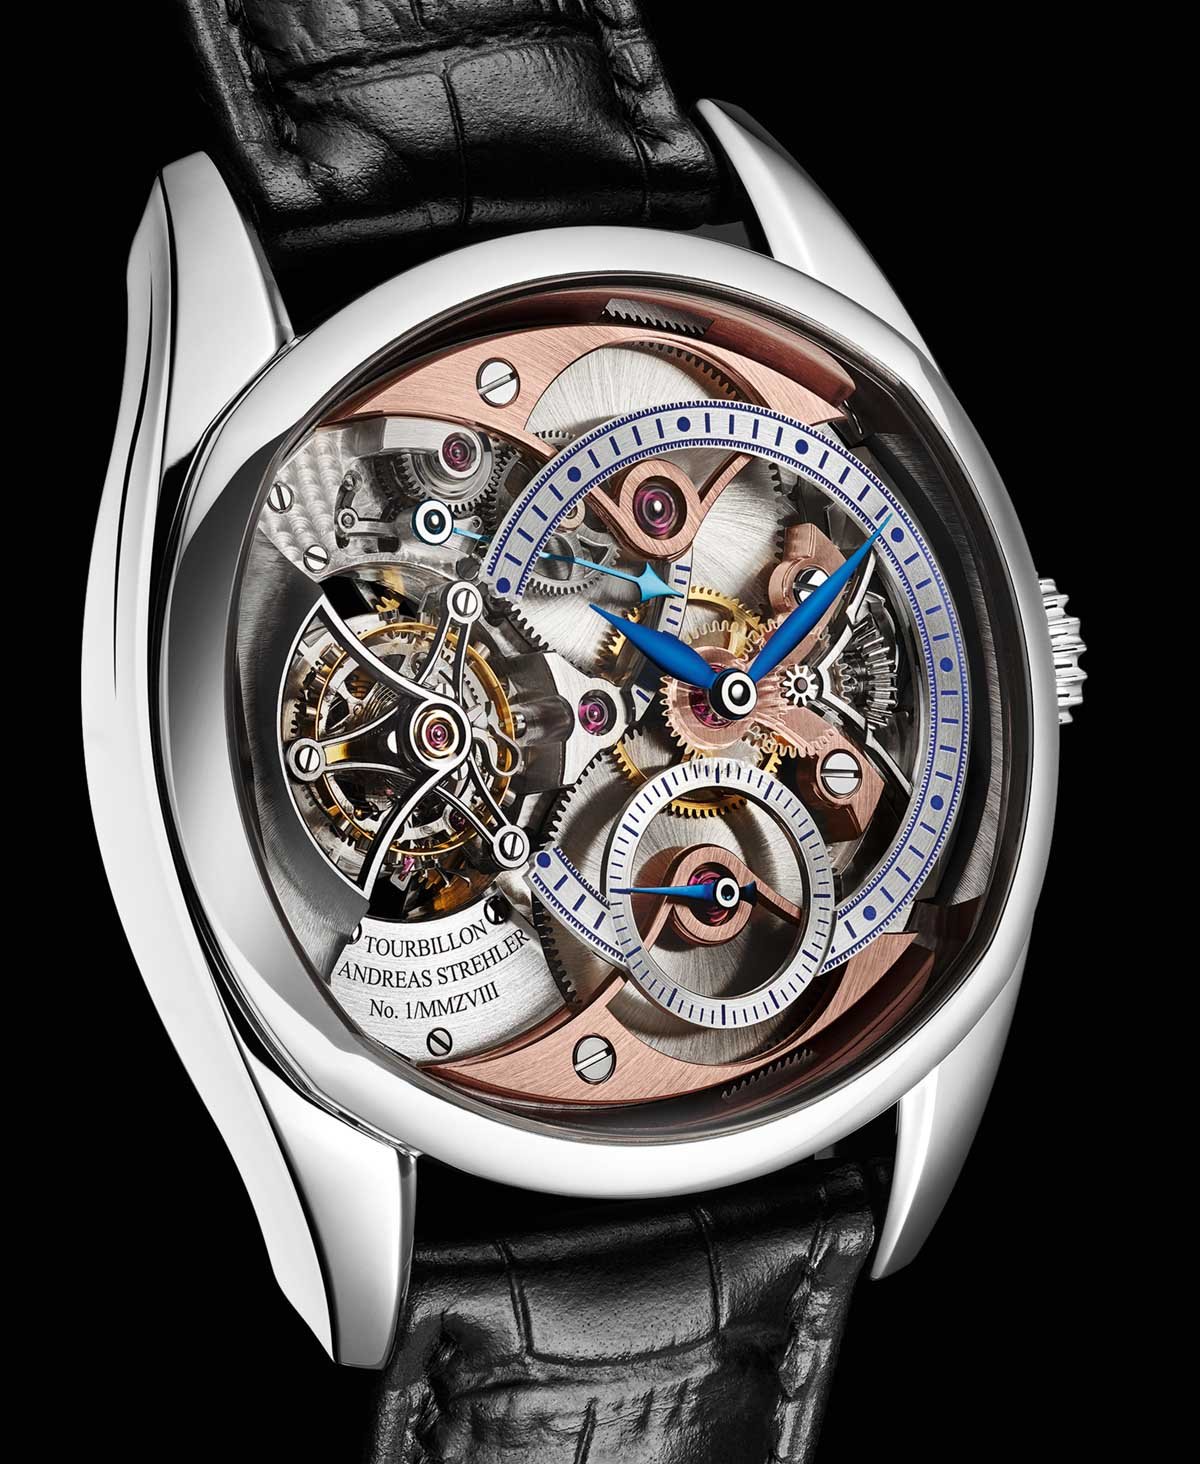 andreas-strehler-transaxle-remontoir-tourbillon-watch-9.jpg